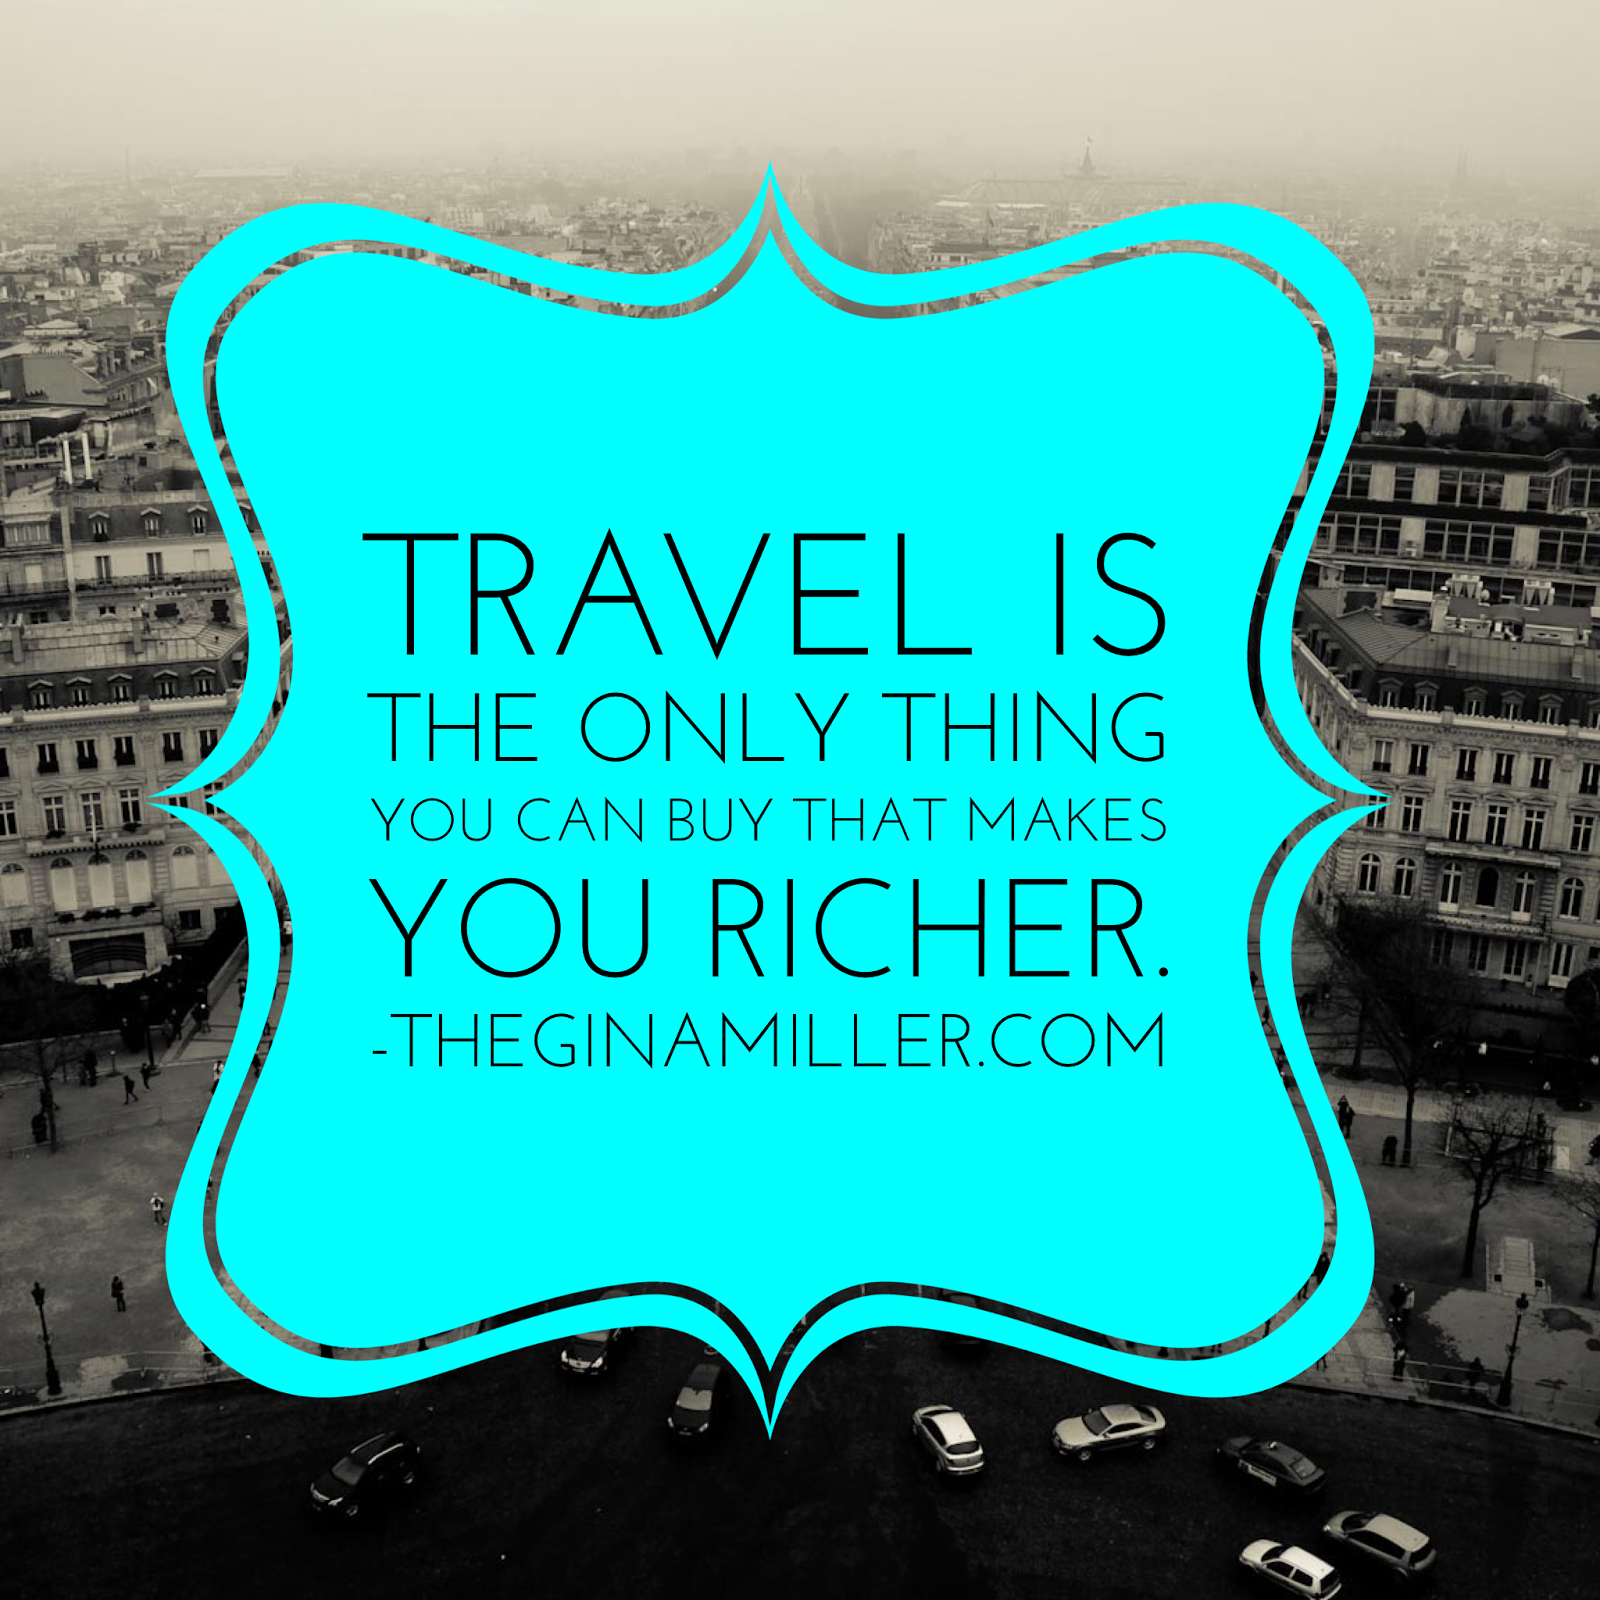 Travel resolutions for 2015, travel is the only thing you buy that makes you richer